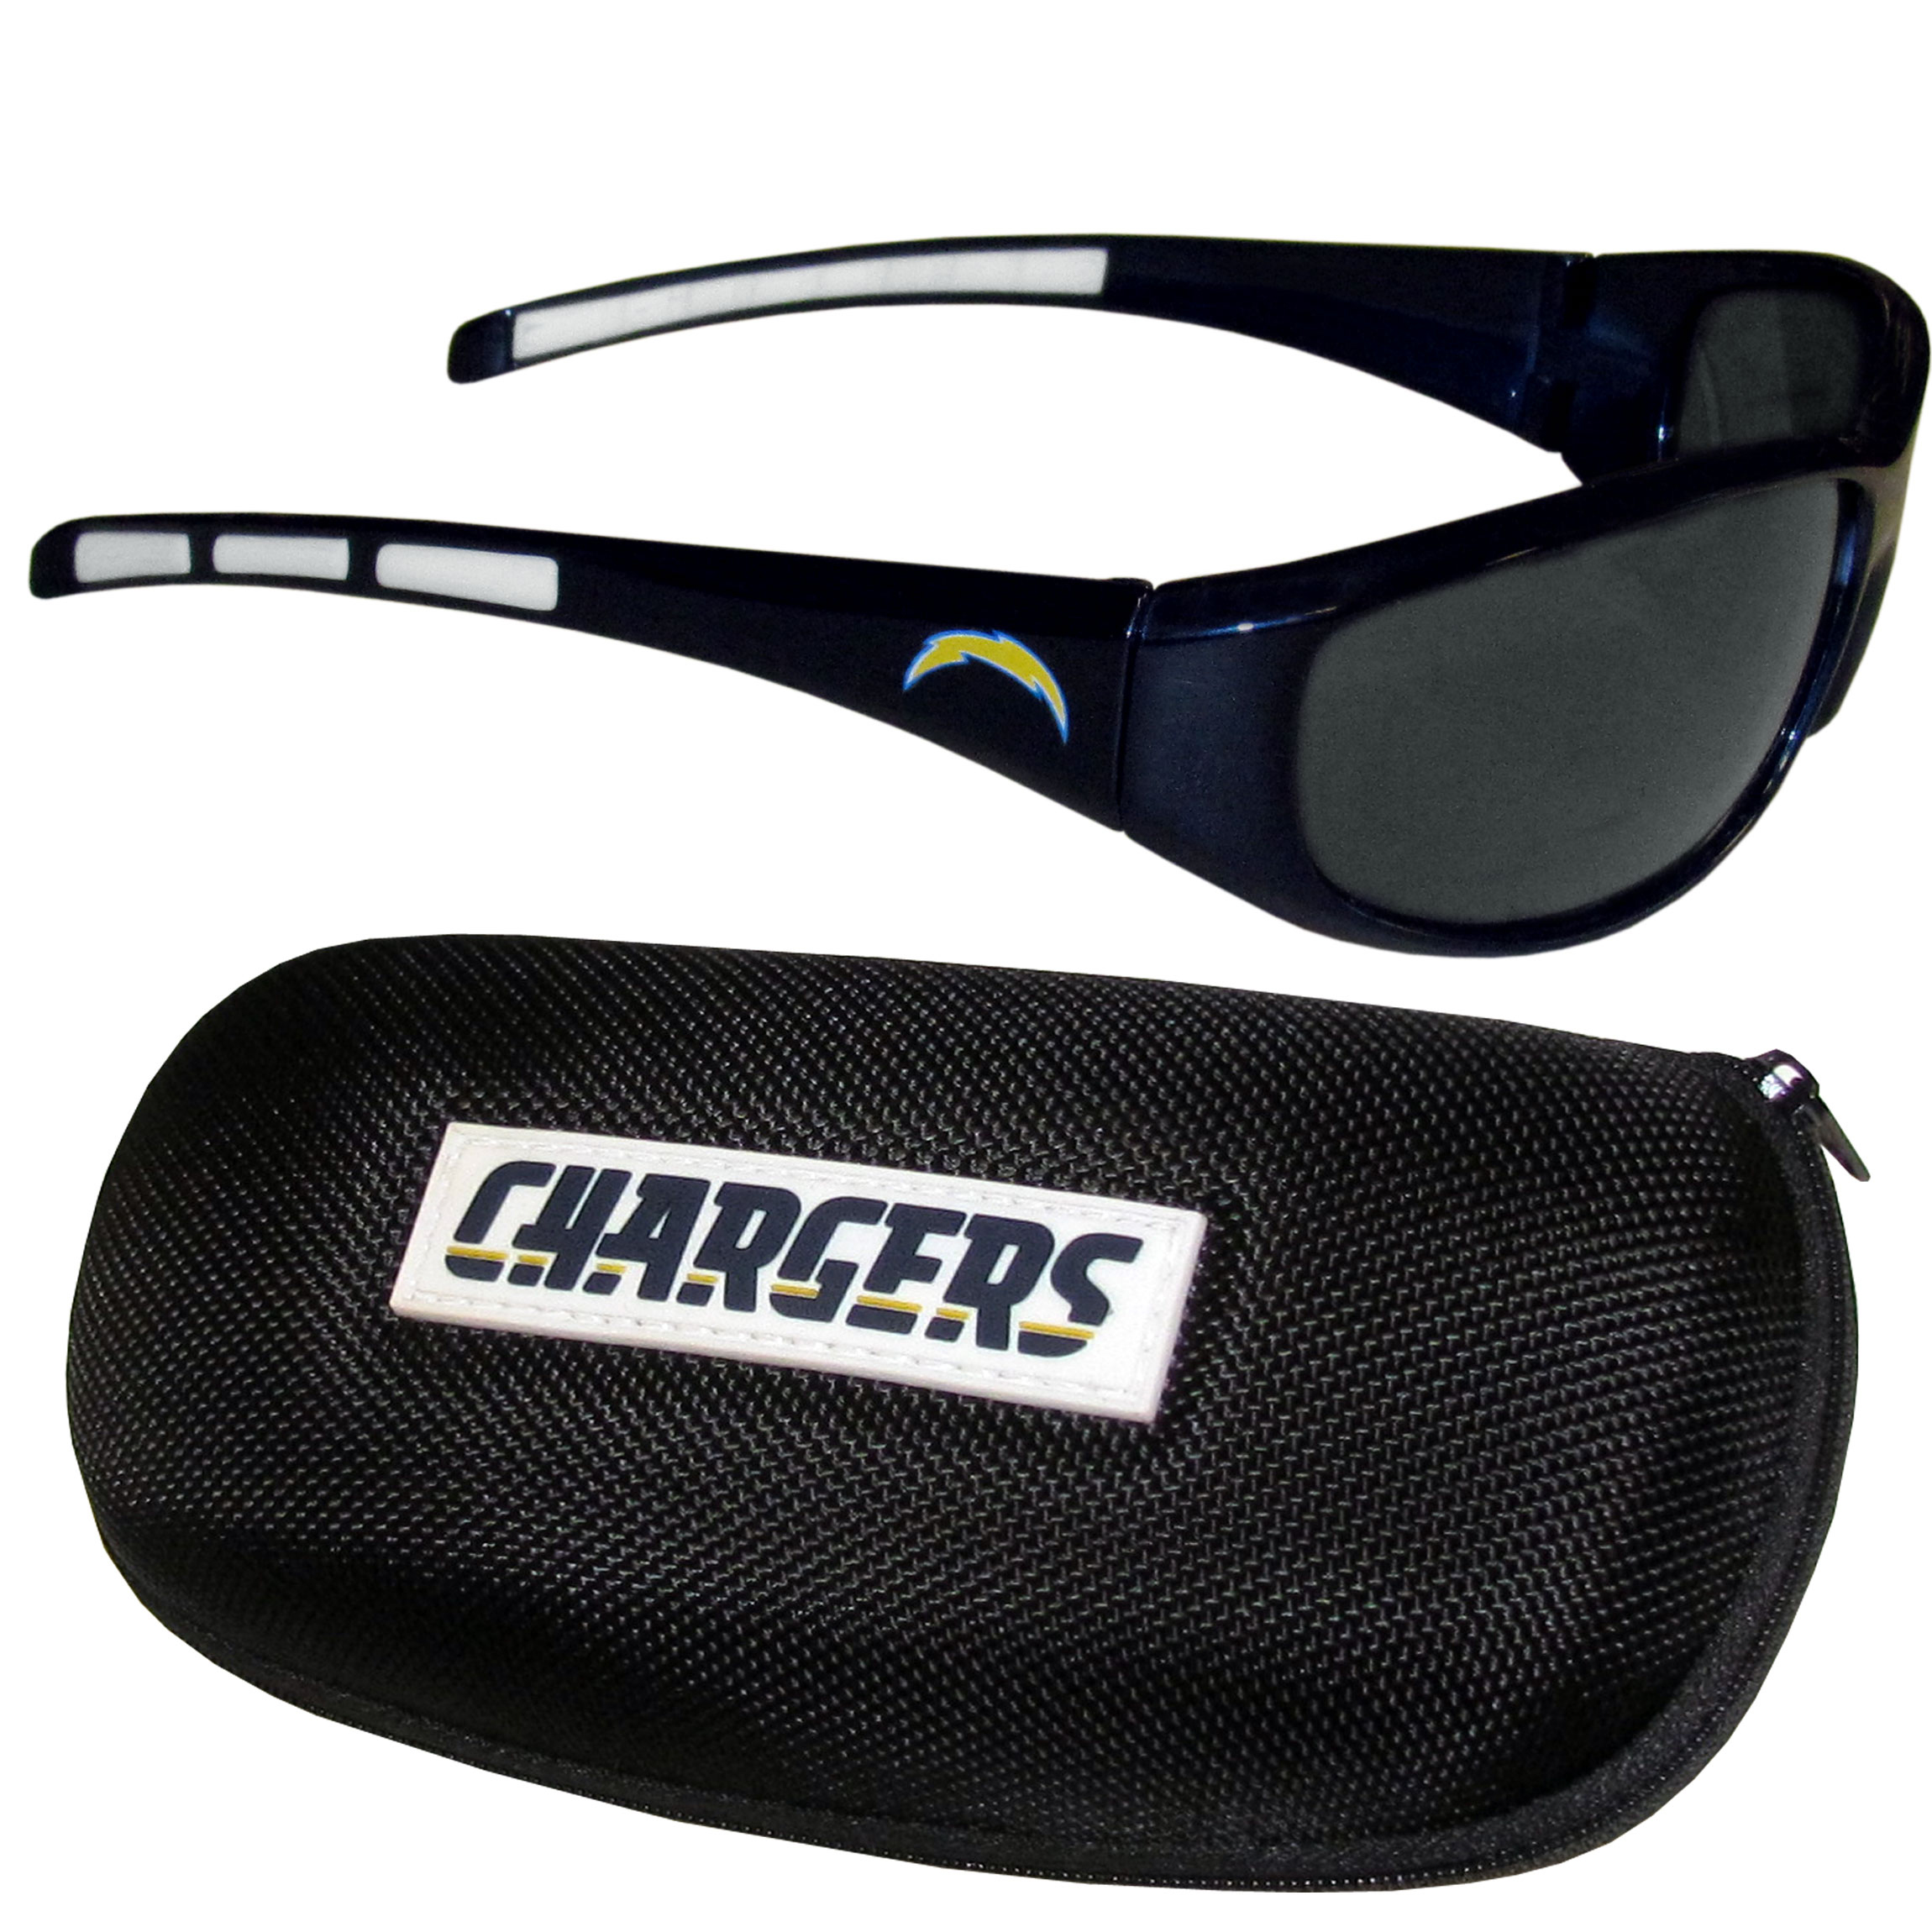 Los Angeles Chargers Wrap Sunglass and Case Set -  This great set includes a high quality pair of Los Angeles Chargers wrap sunglasses and hard carrying case.